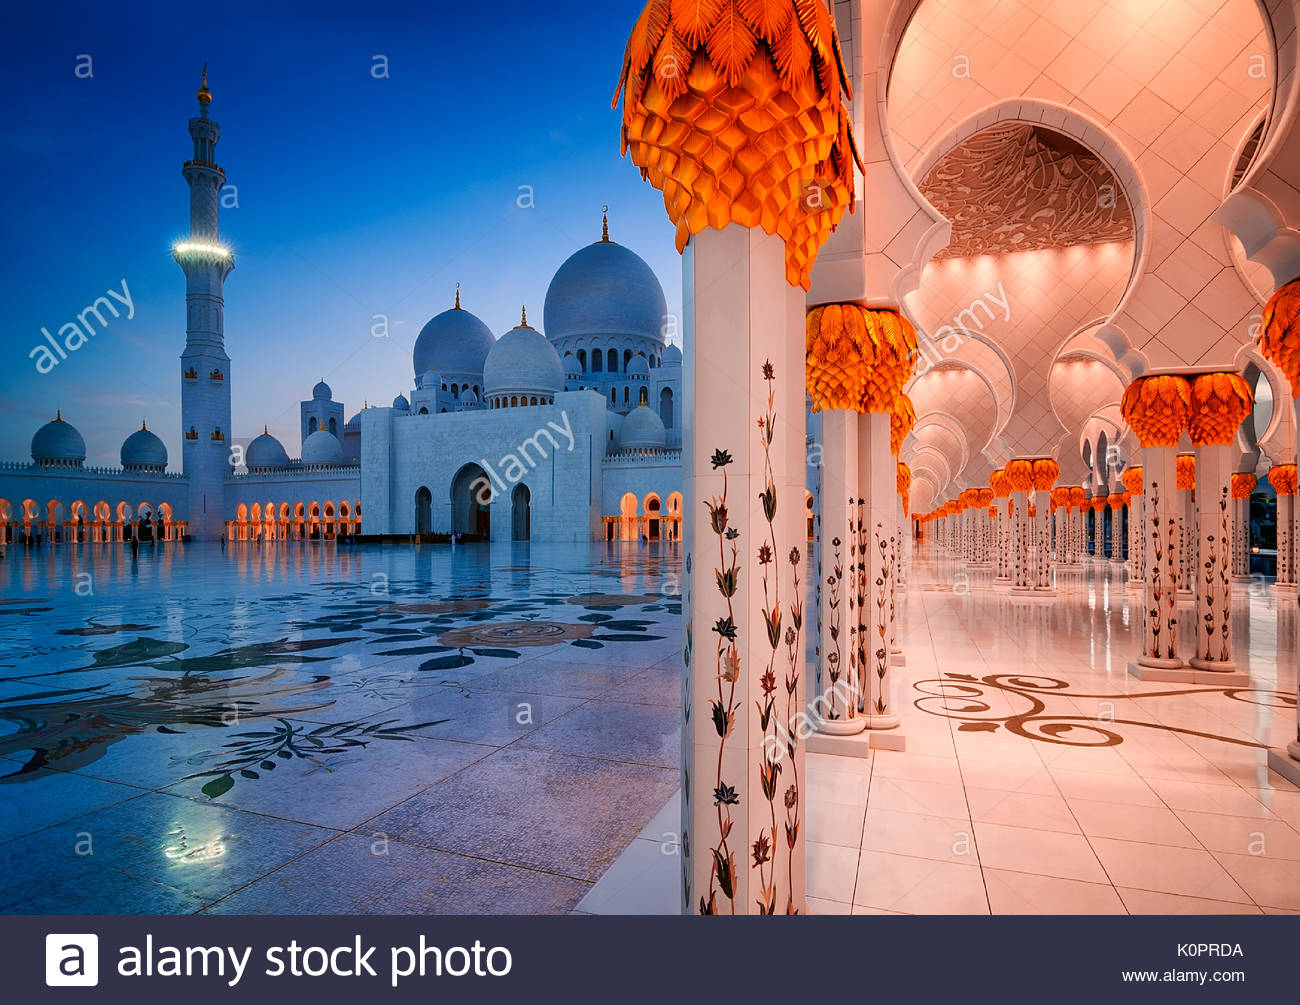 ABU DHABI, UAE - MAR 19, 2014: Night view at Sheikh Zayed Grand Mosque, Abu Dhabi, United Arab Emirates - Stock Image